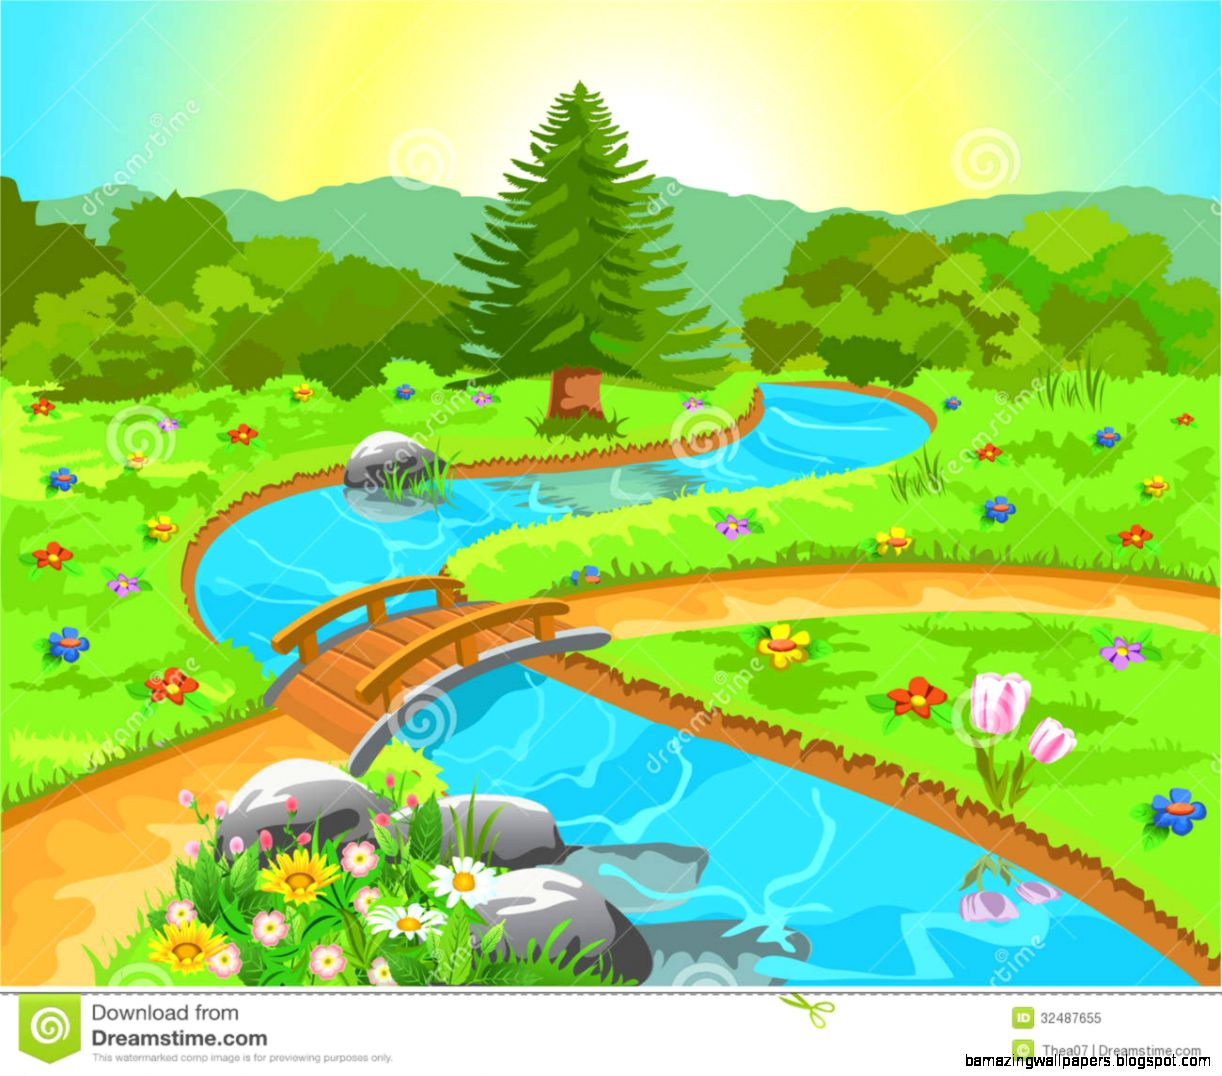 Clipart Of Nature Scenes.